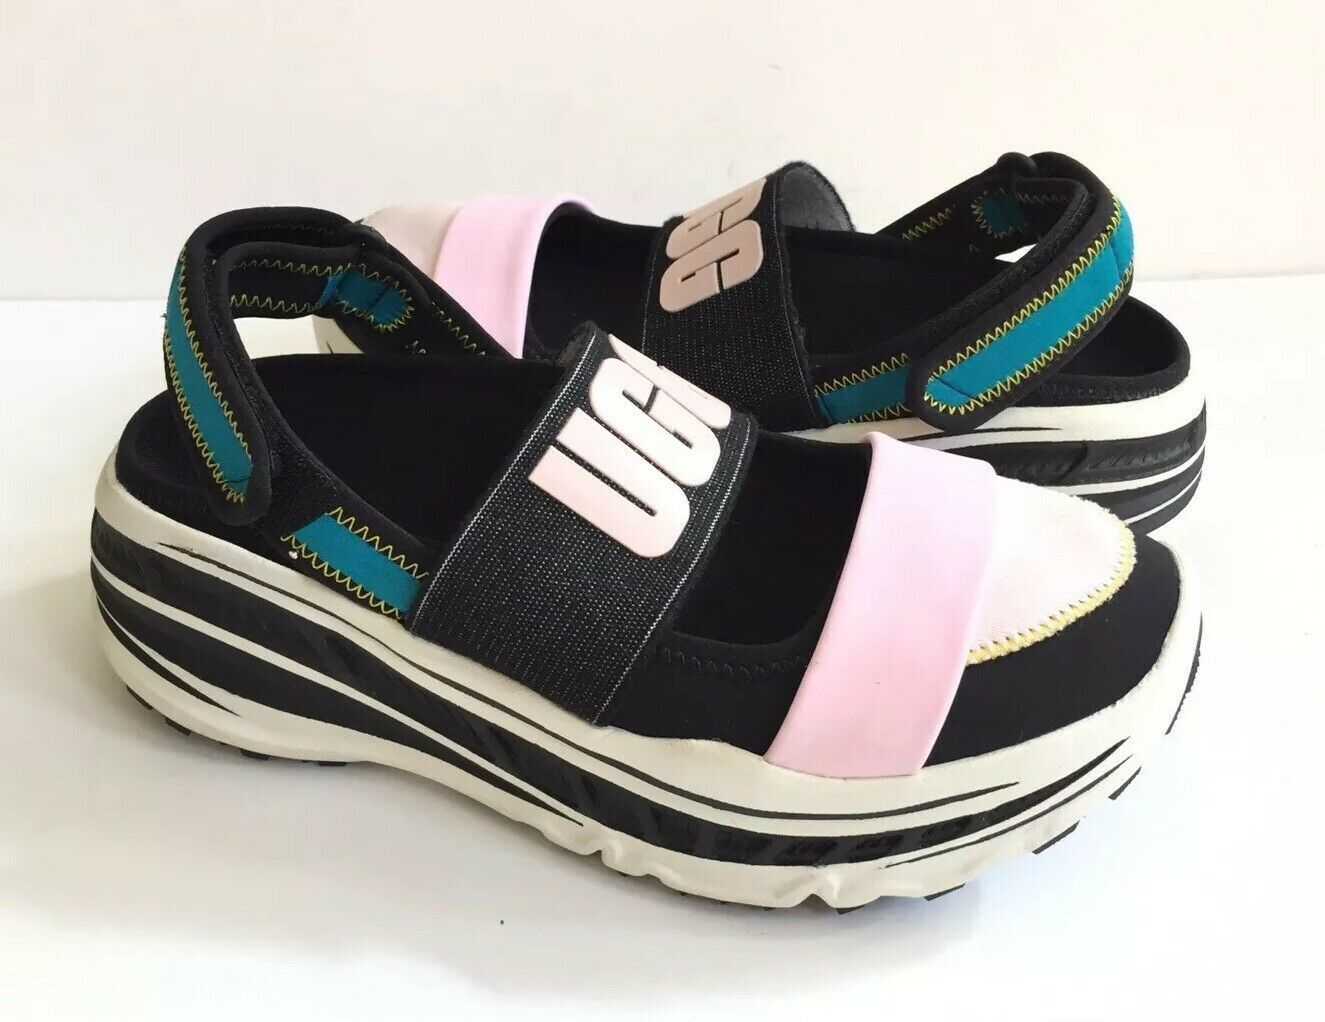 UGG FASHION BABY SLINGBACK RUNNER BLACK PLATFORM SNEAKER SHOE US 7 / EU 38 /UK 5